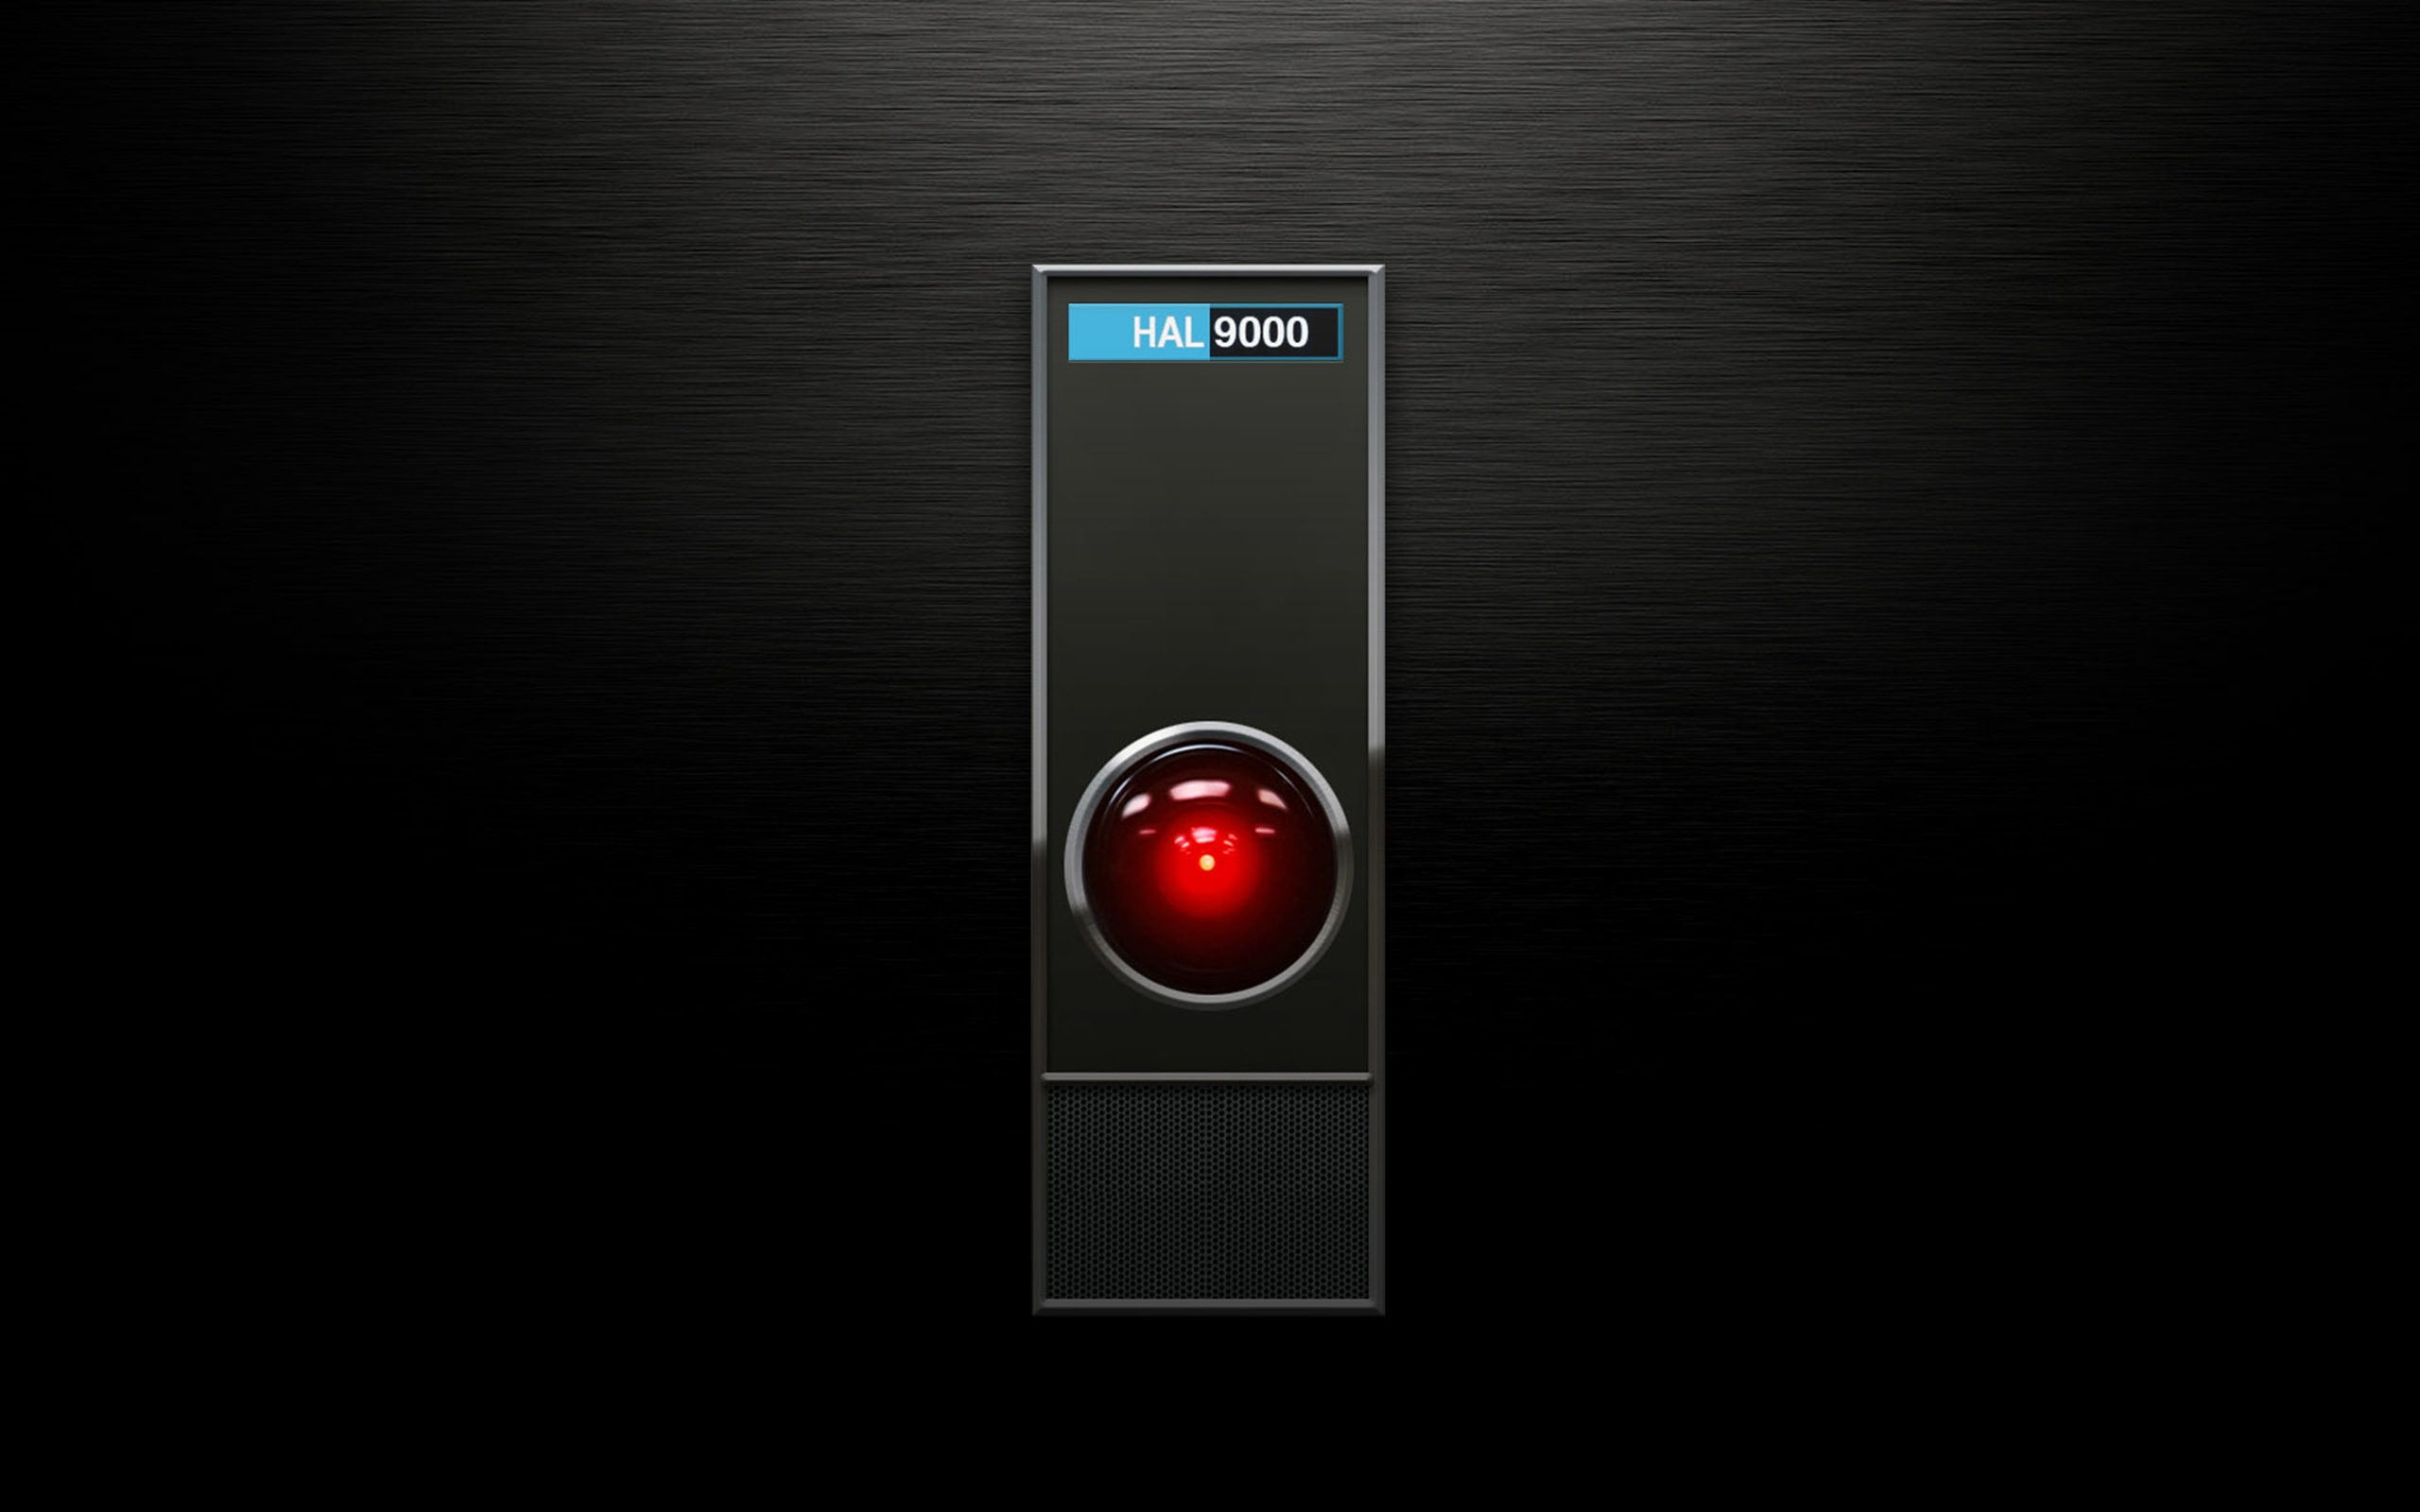 2001 a space odyssey wallpaper iphone